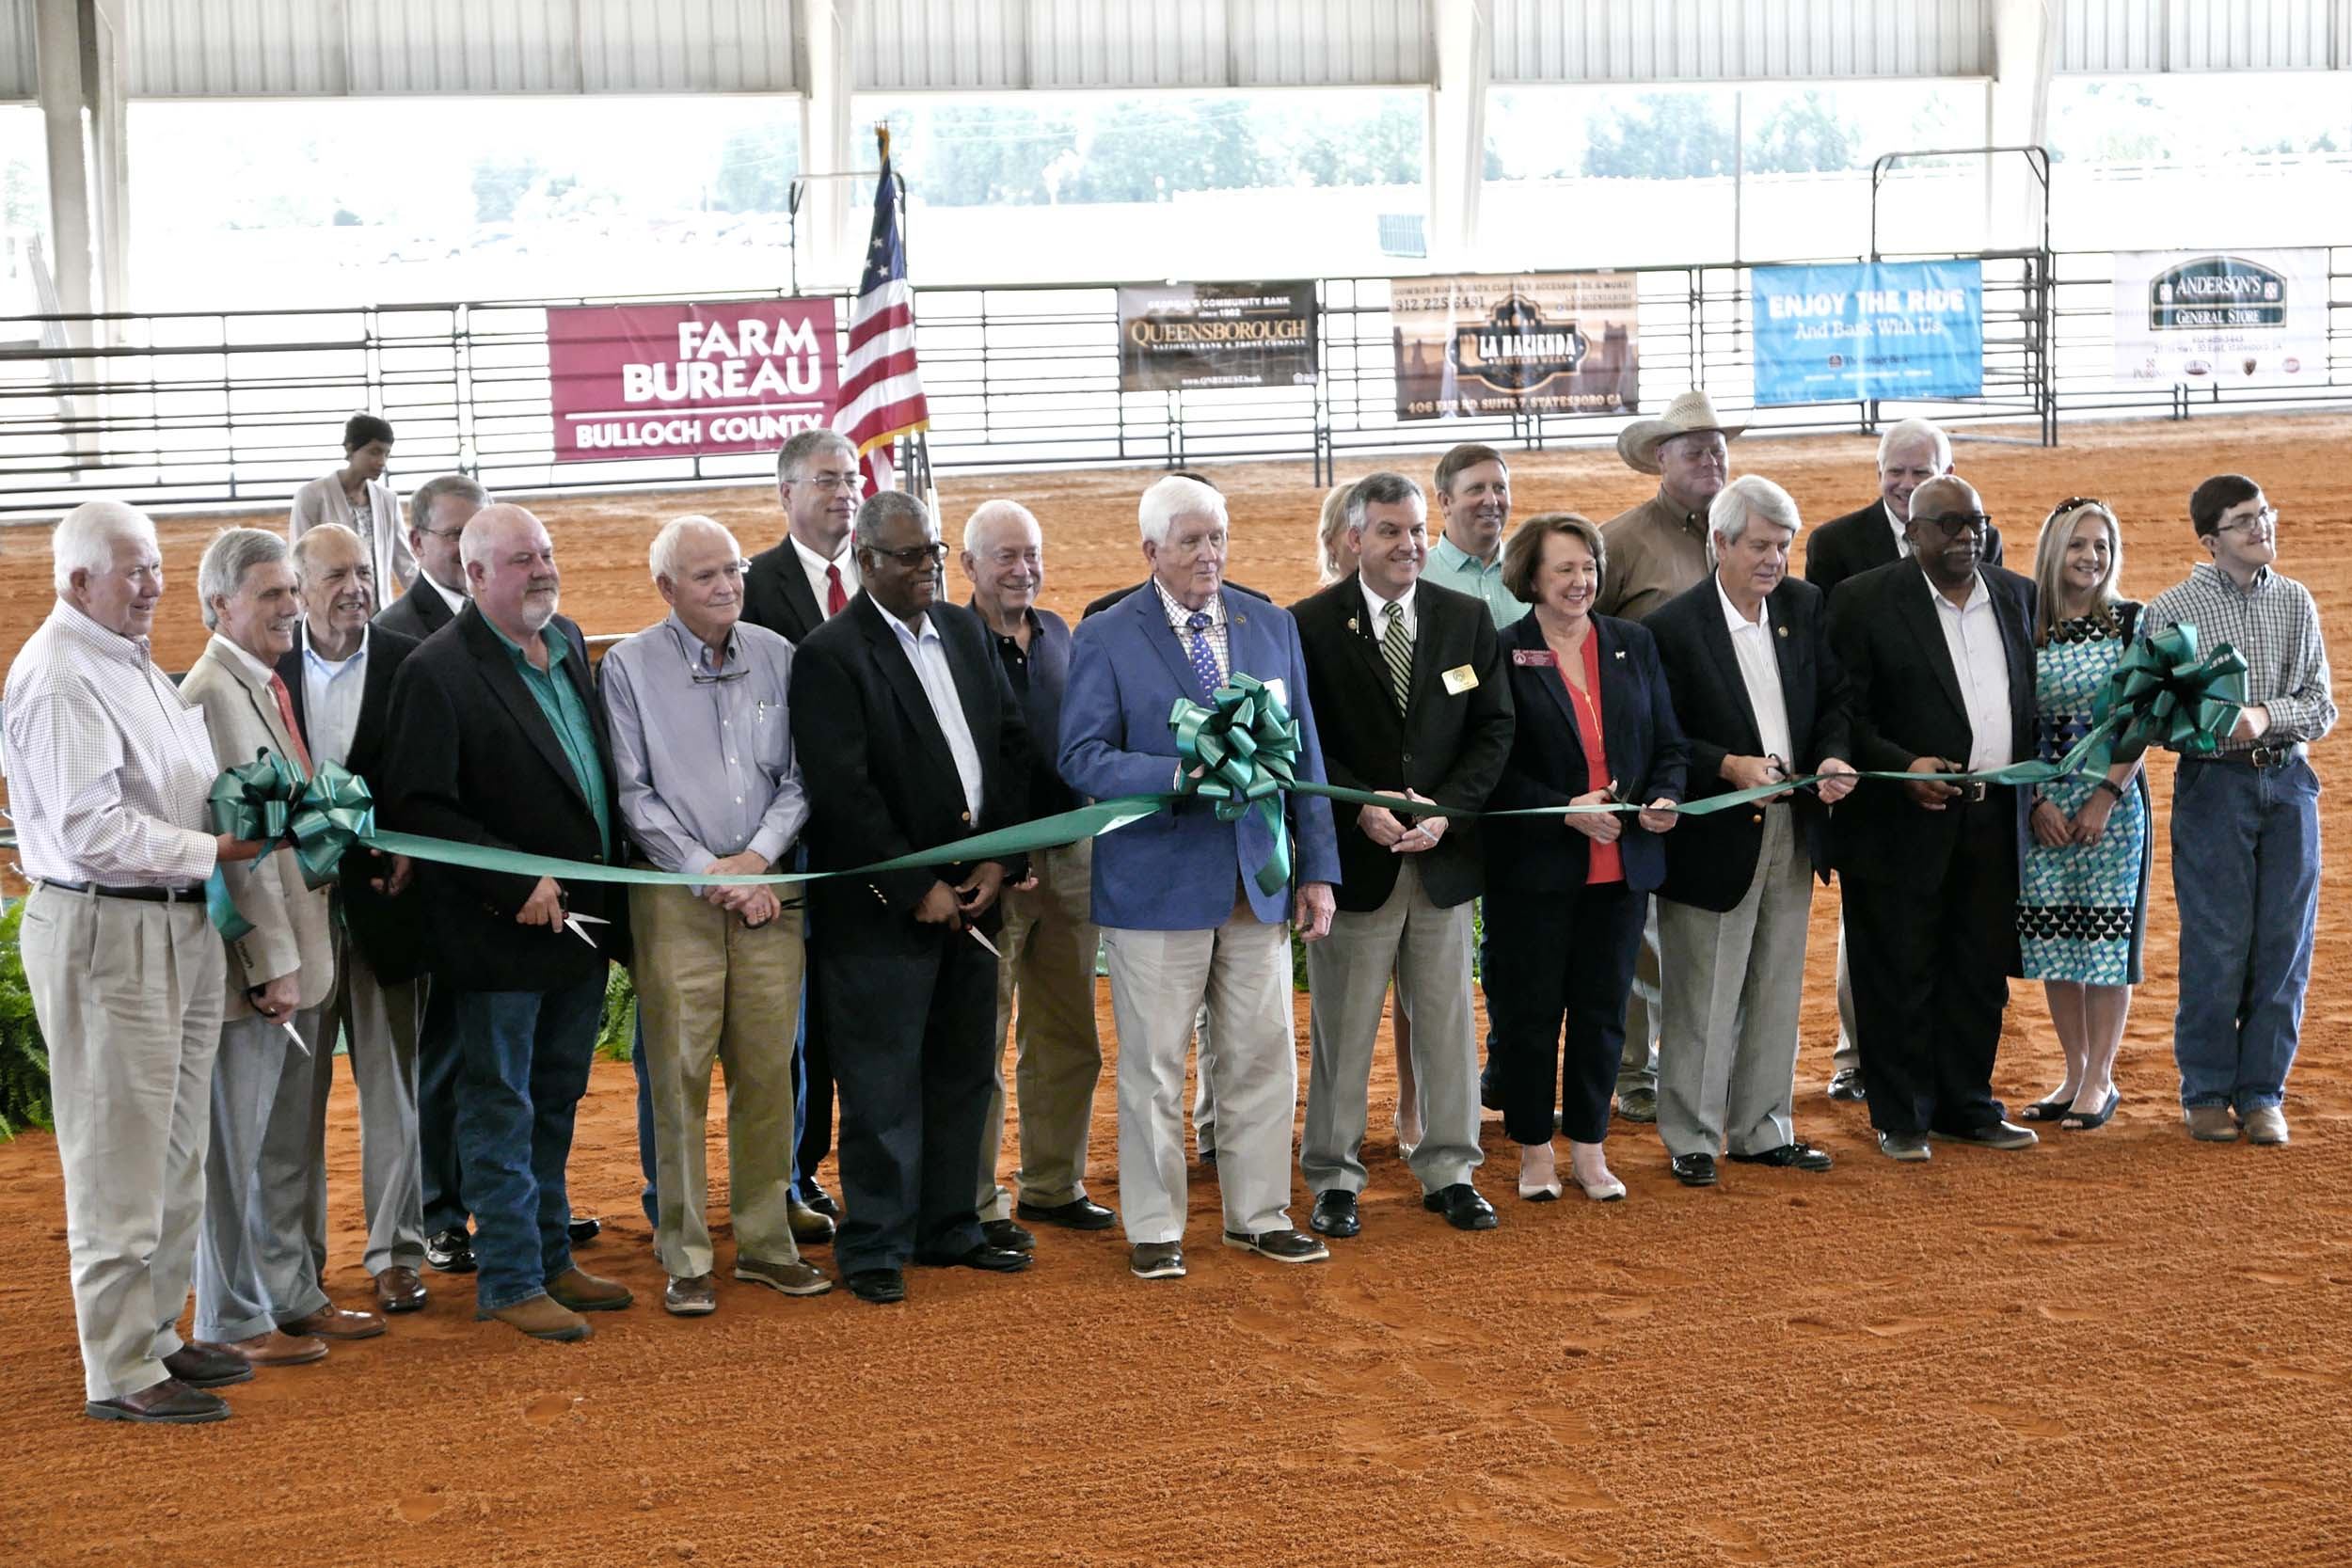 Ribbon Cutting Held for the new Bulloch County Agricultural Center in Statesboro, Georgia